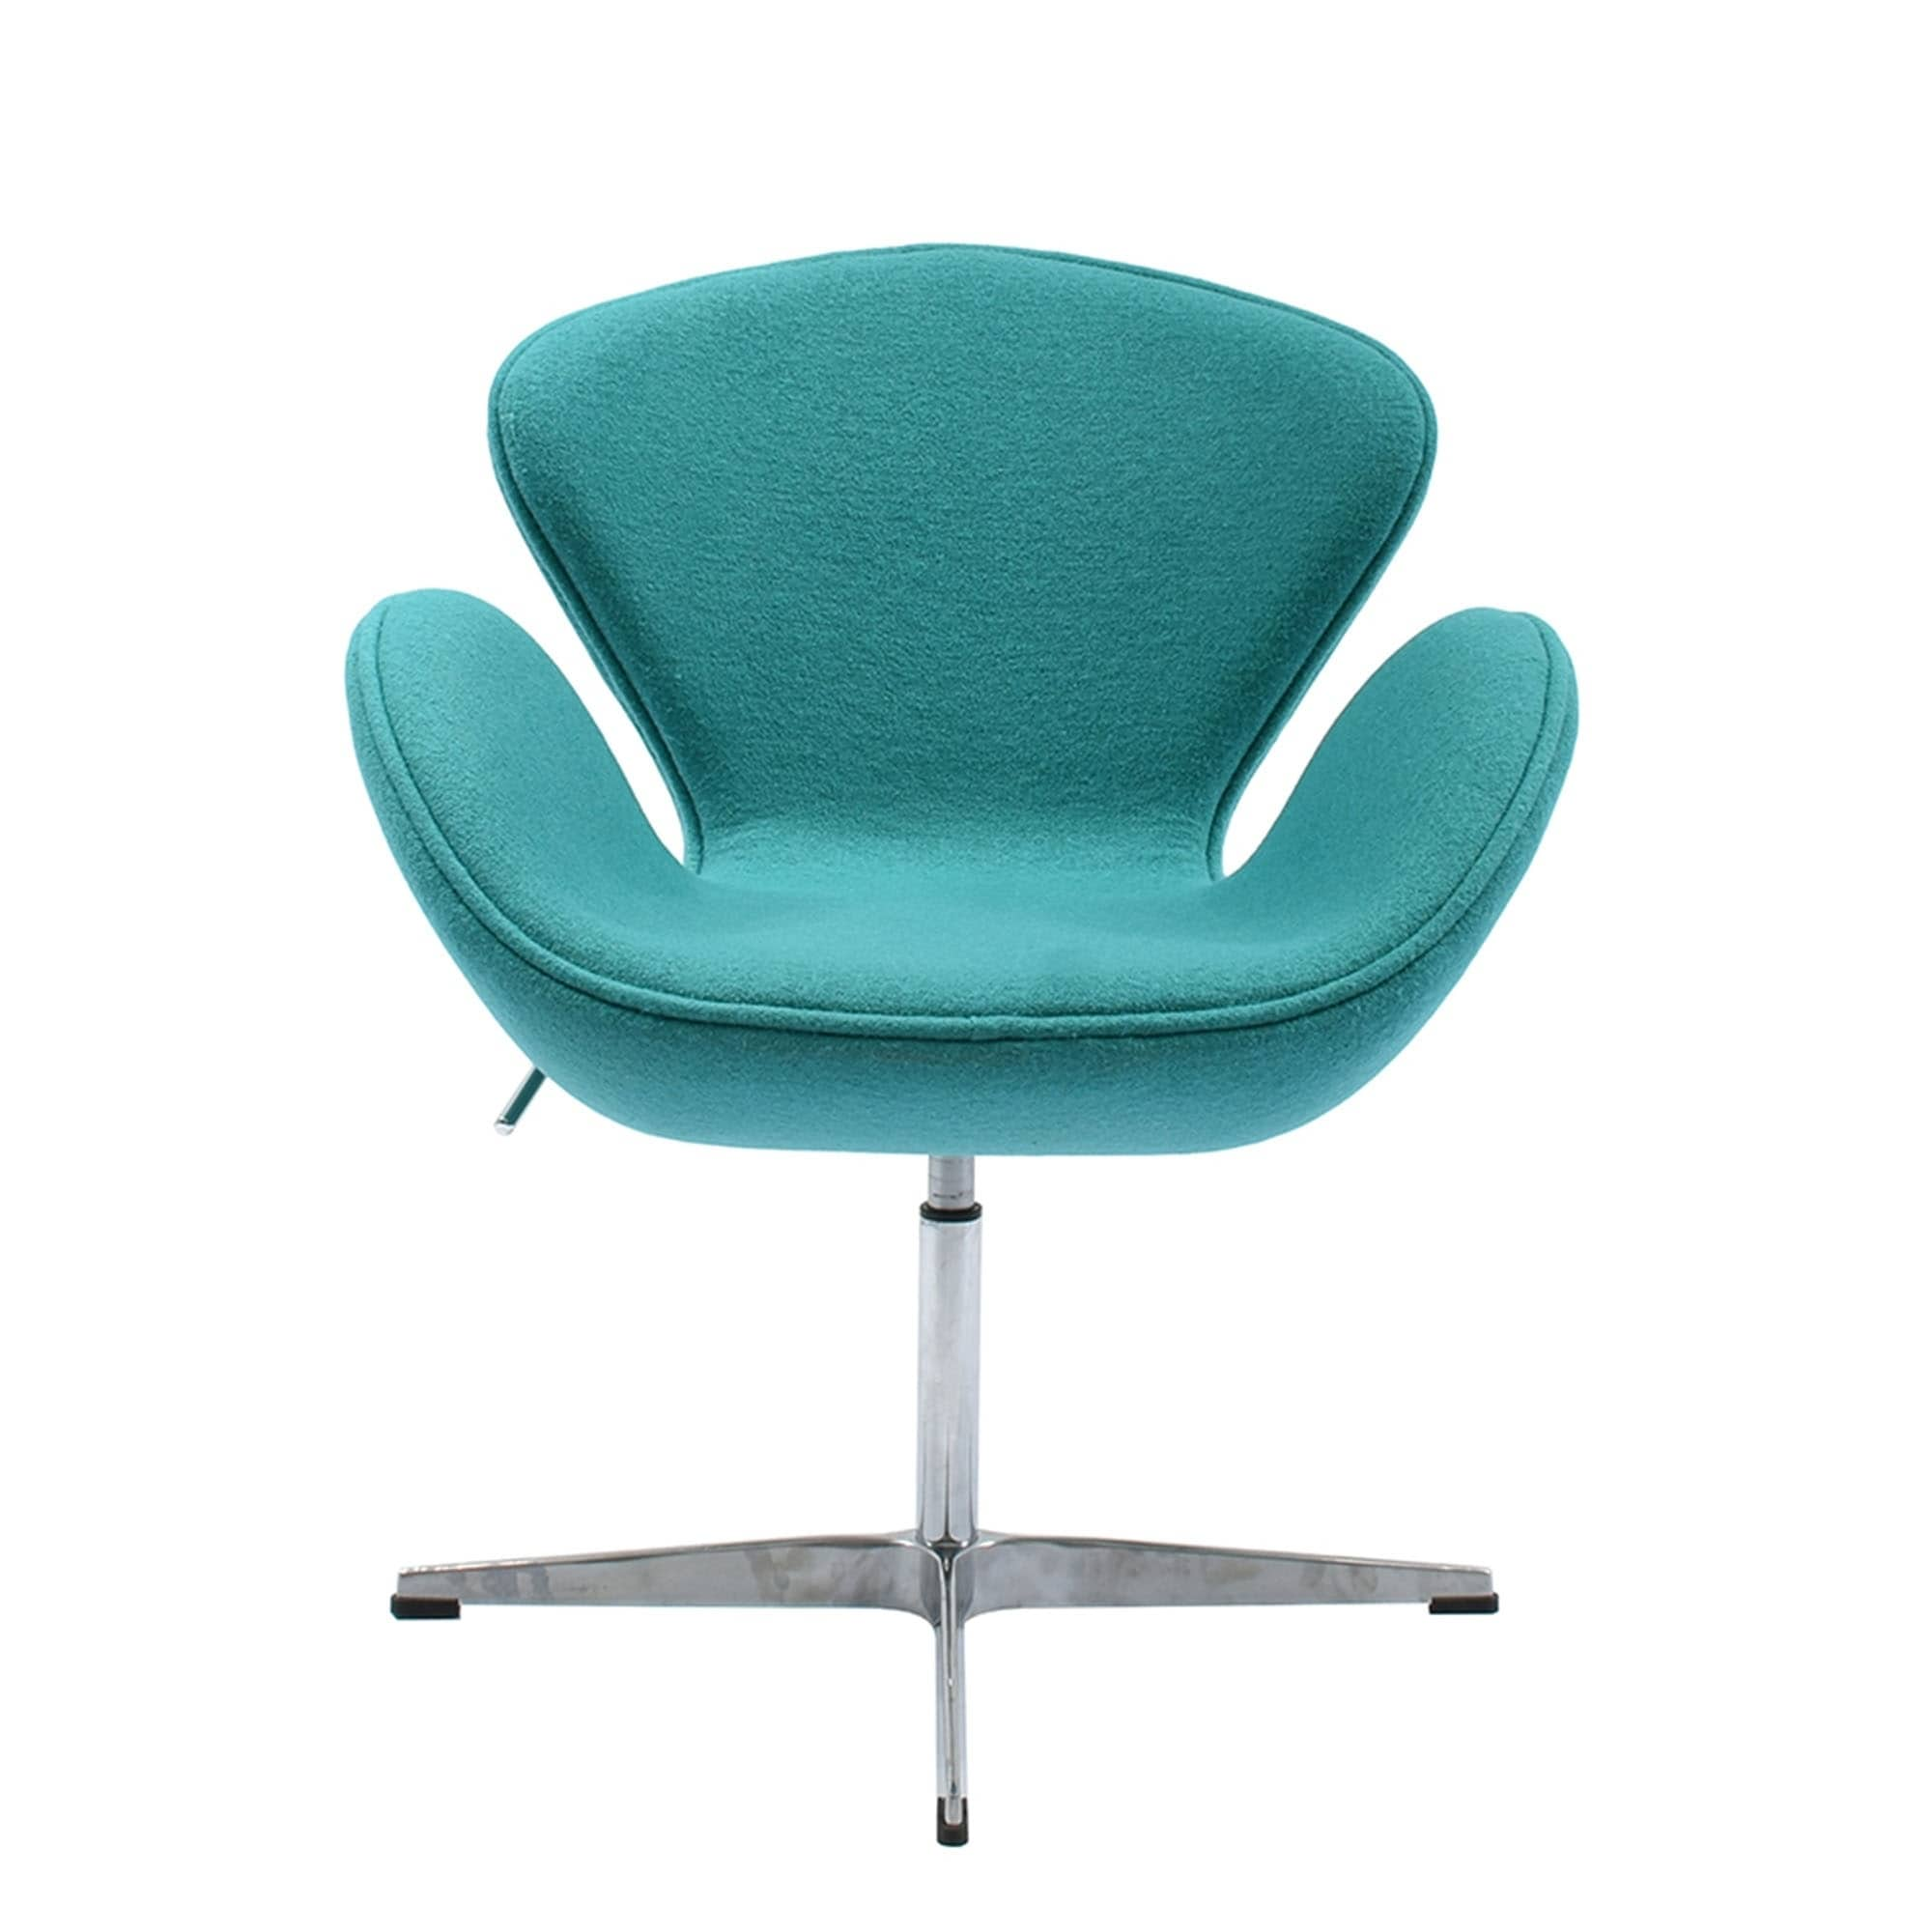 Marvelous Swan Chair Swivel Height Adjustable Lounge Chair Cashmere Machost Co Dining Chair Design Ideas Machostcouk